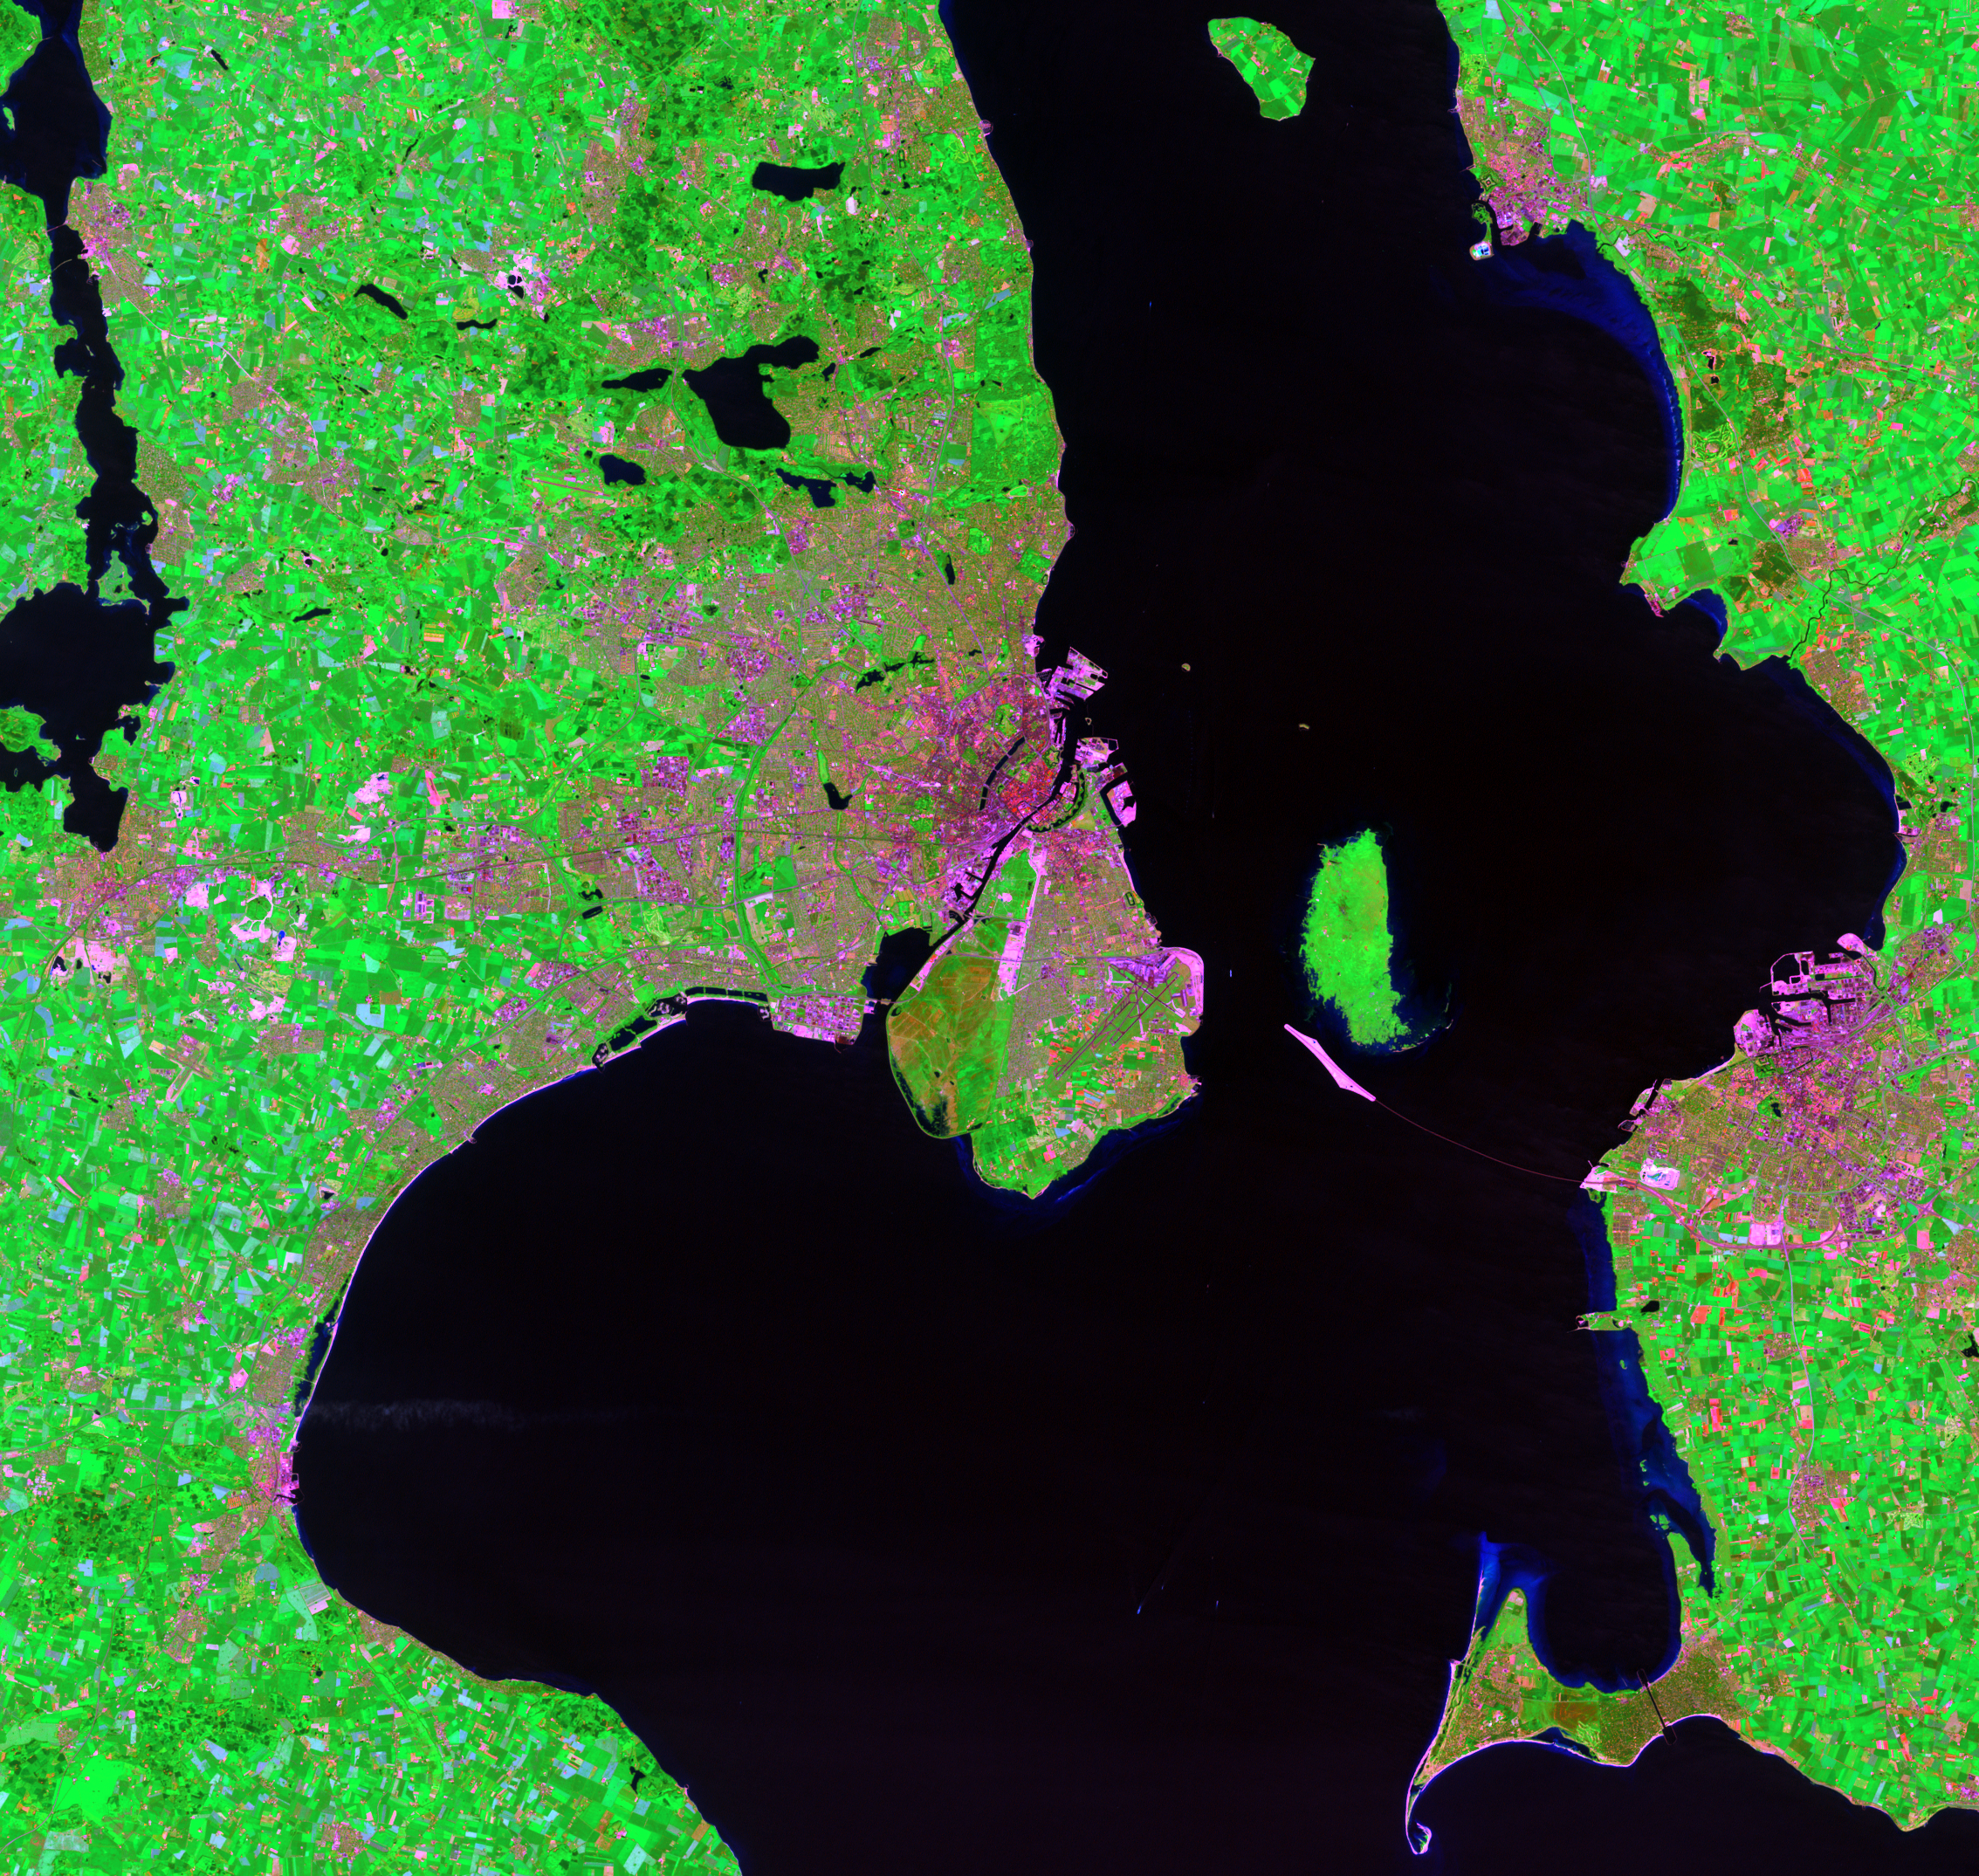 July 7, 2001, Landsat 7 (path/row 194/21) — Copenhagen, Denmark